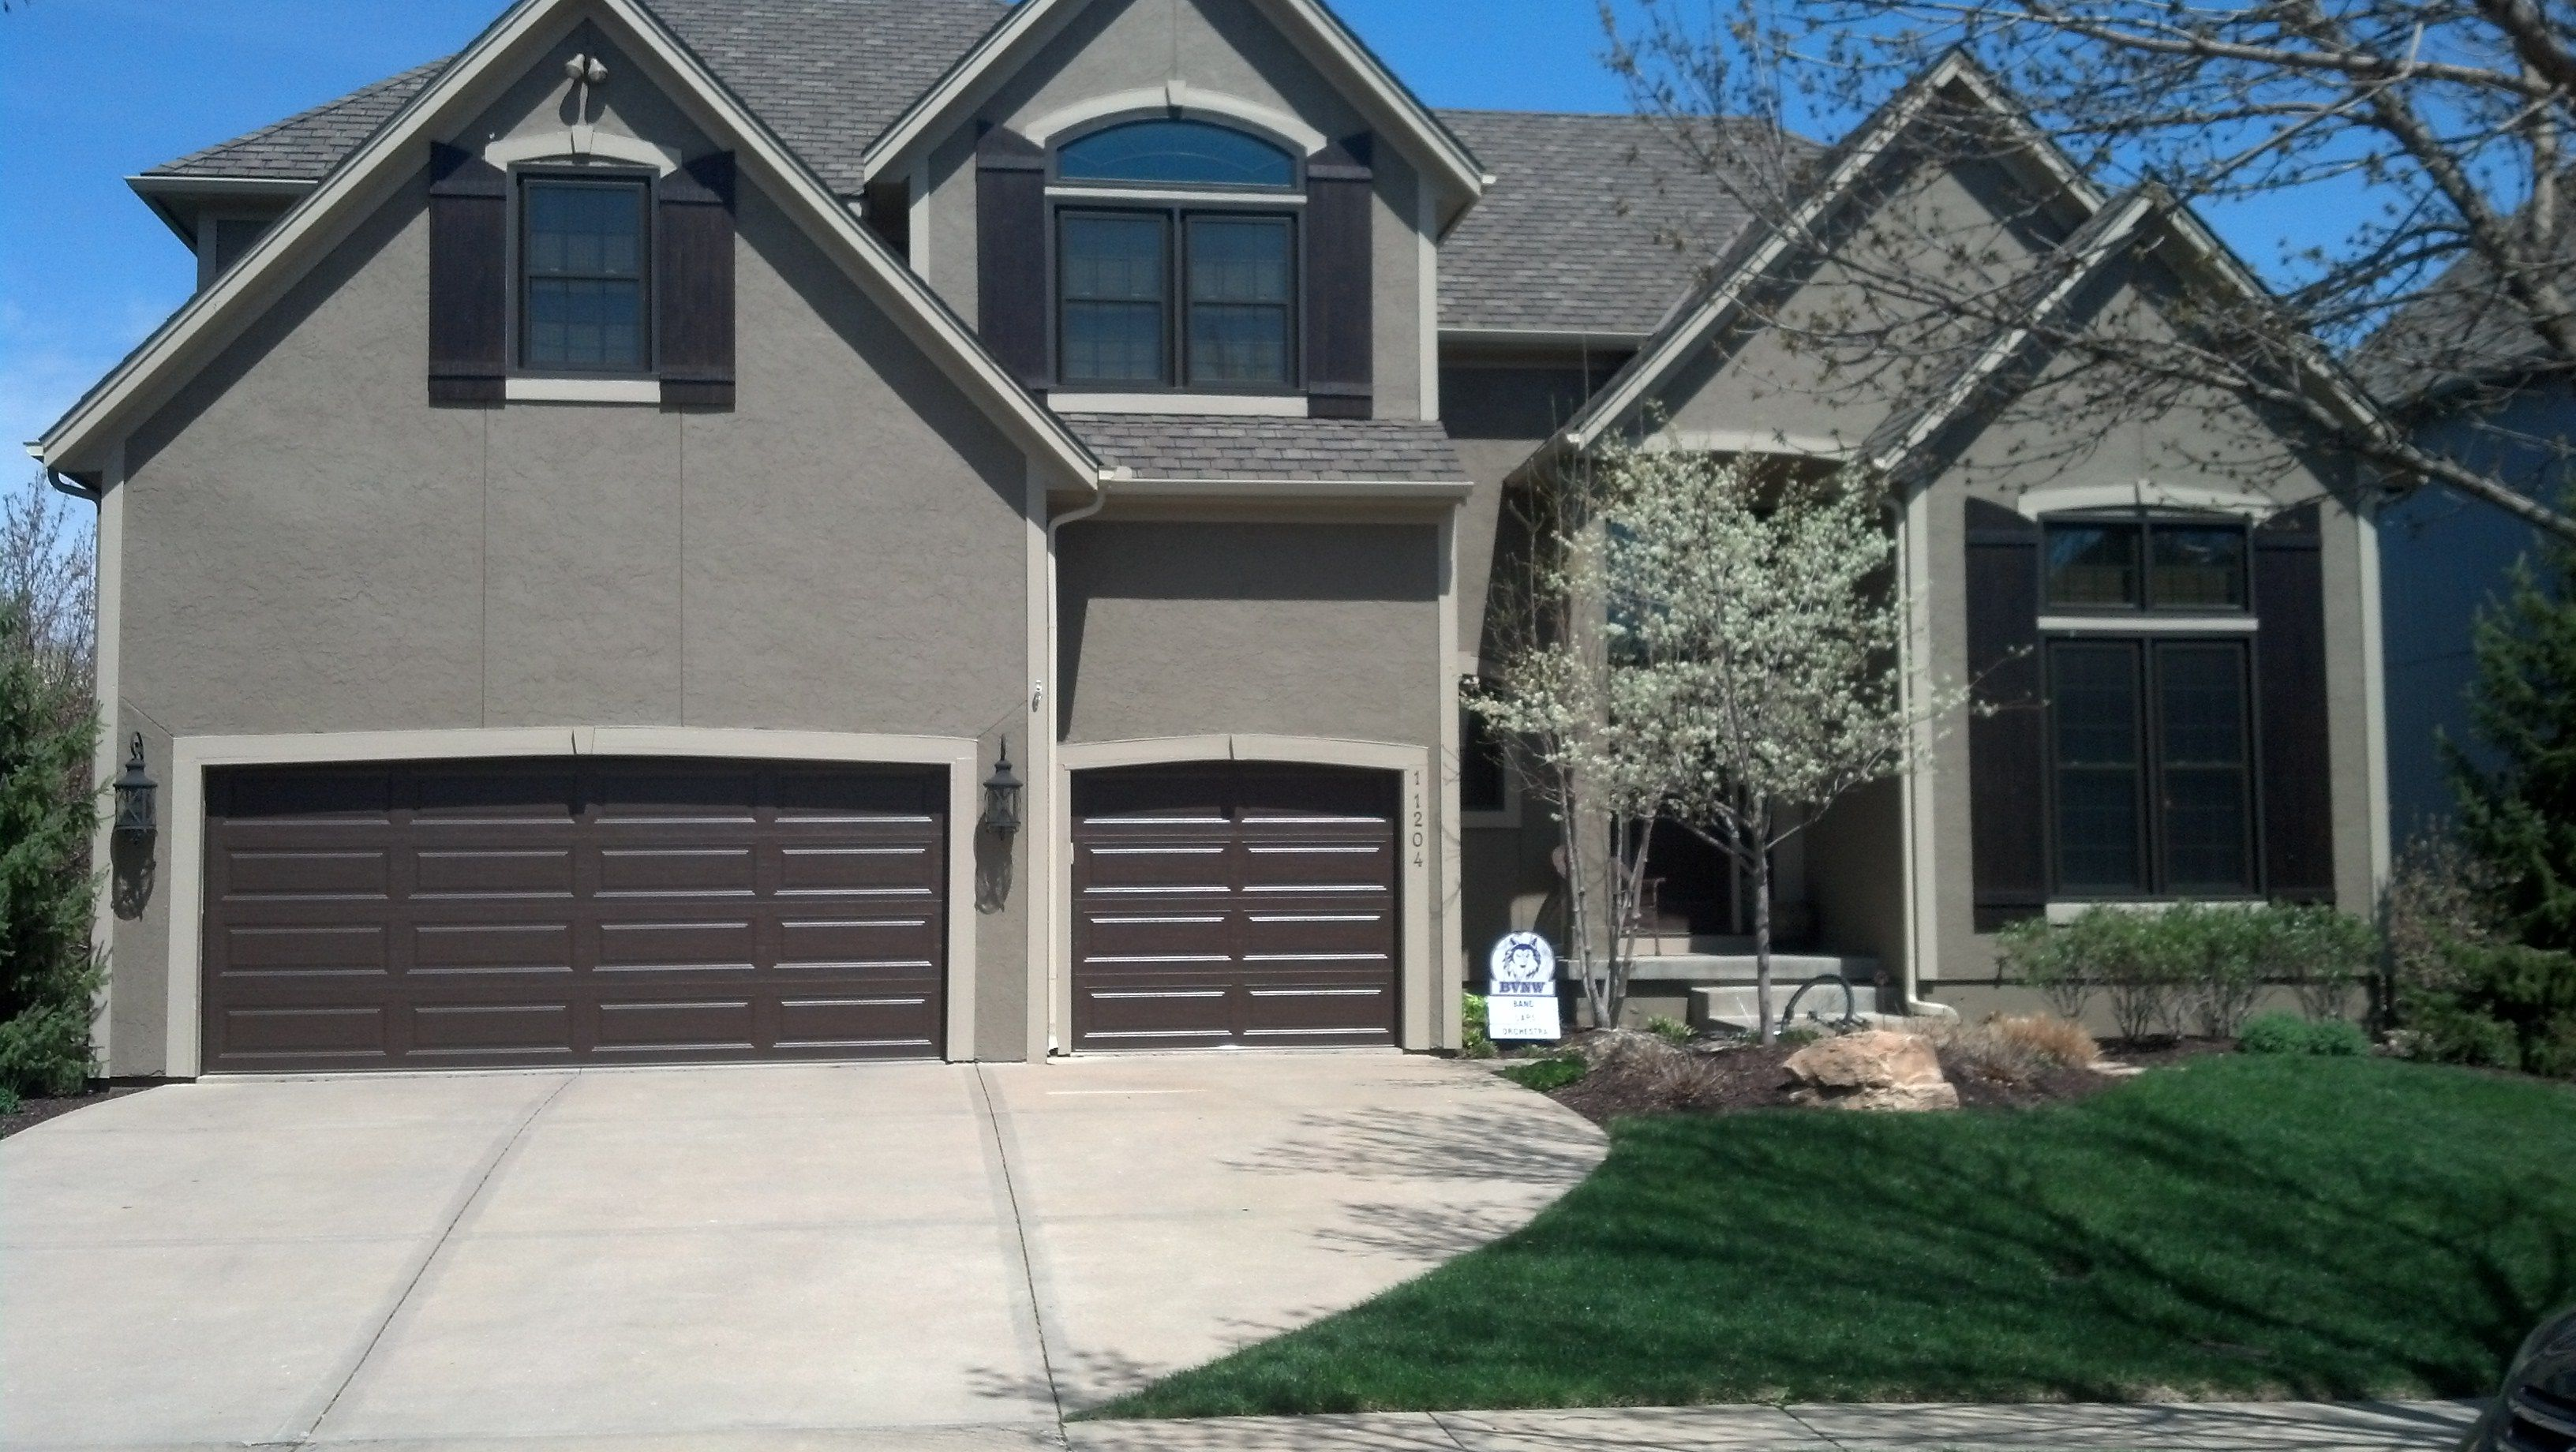 Clopay Classic Collection, Premium Series, Long Panel Chocolate Brown Garage  Doors, Double